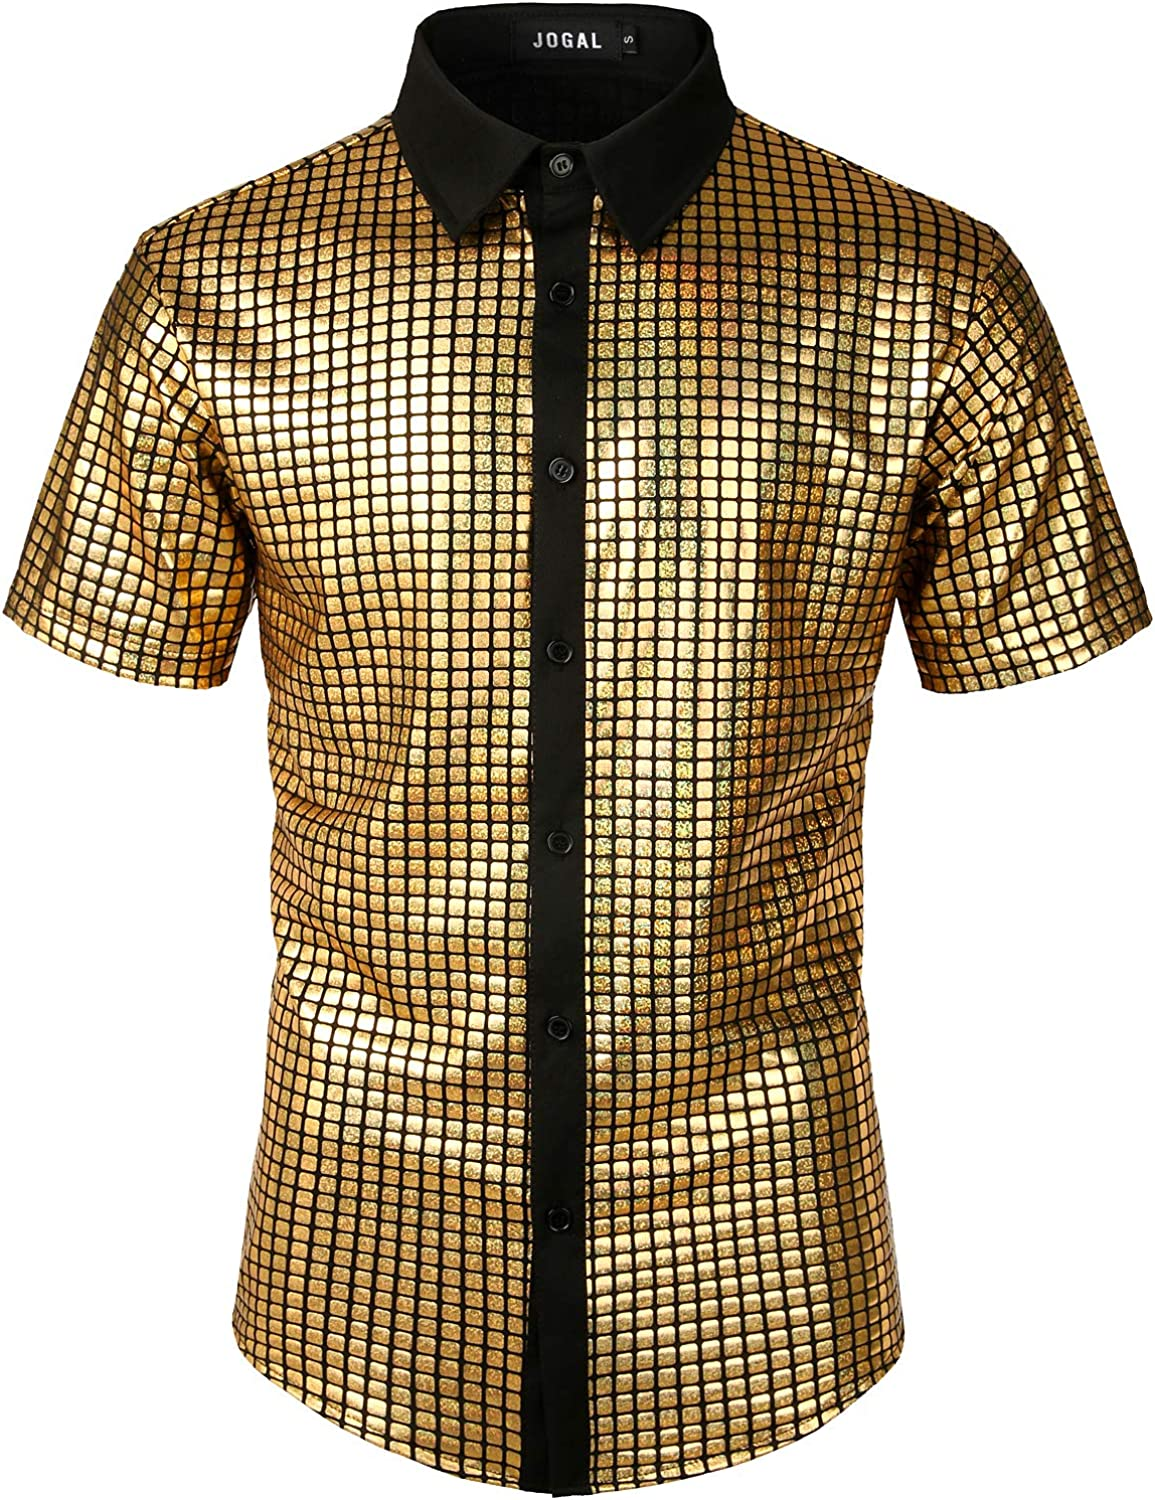 70s Costumes: Disco Costumes, Hippie Outfits JOGAL Mens Dress Shirt Sequins Button Down Shirts 70s Disco Party Costume $26.99 AT vintagedancer.com